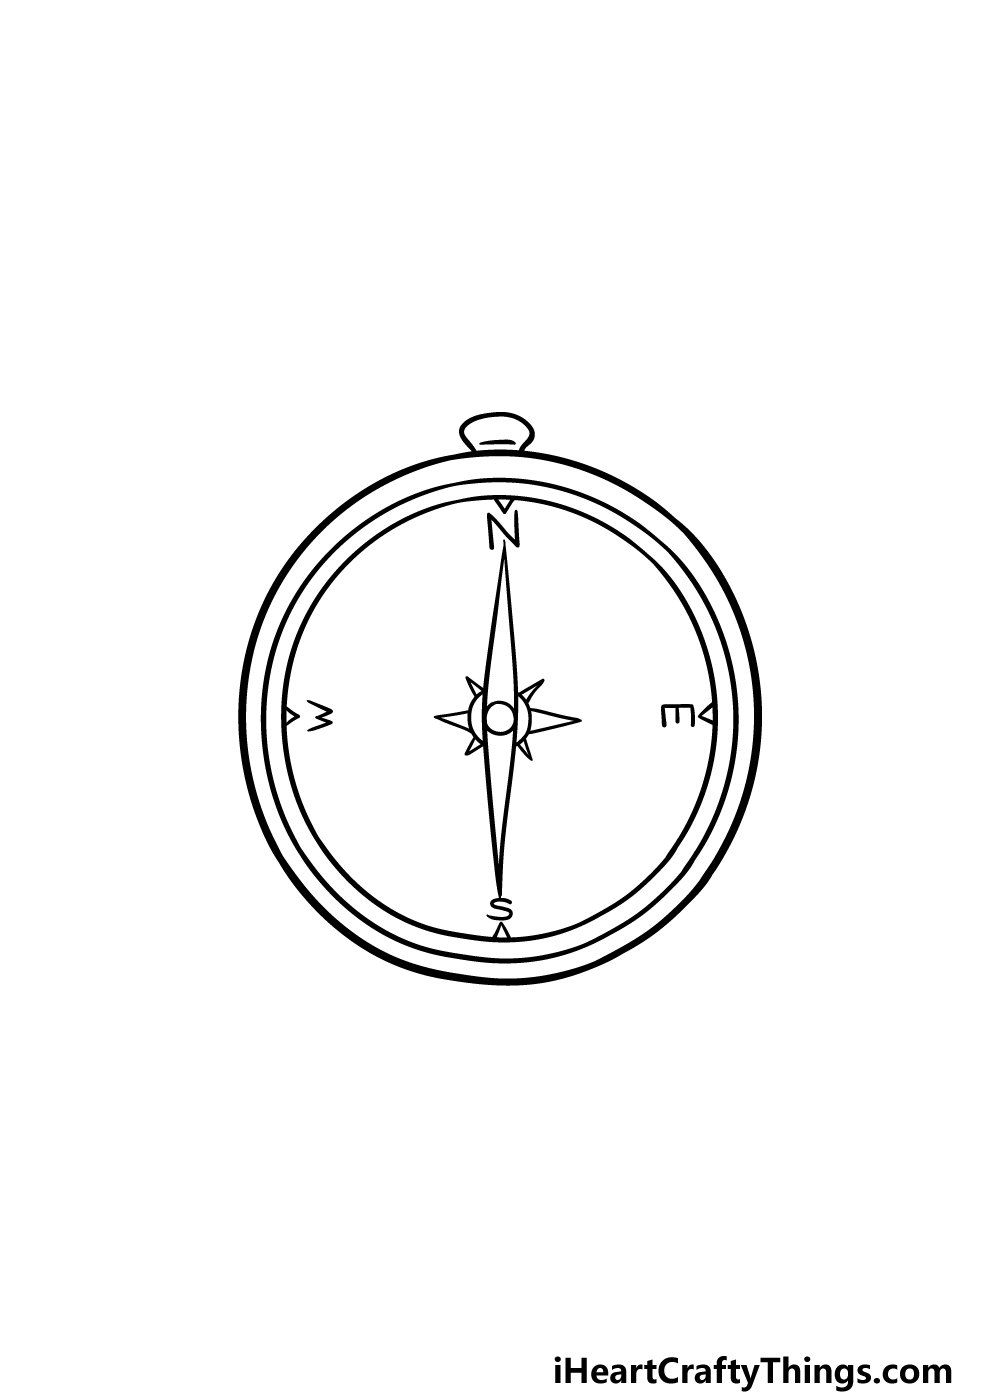 drawing a compass step 3